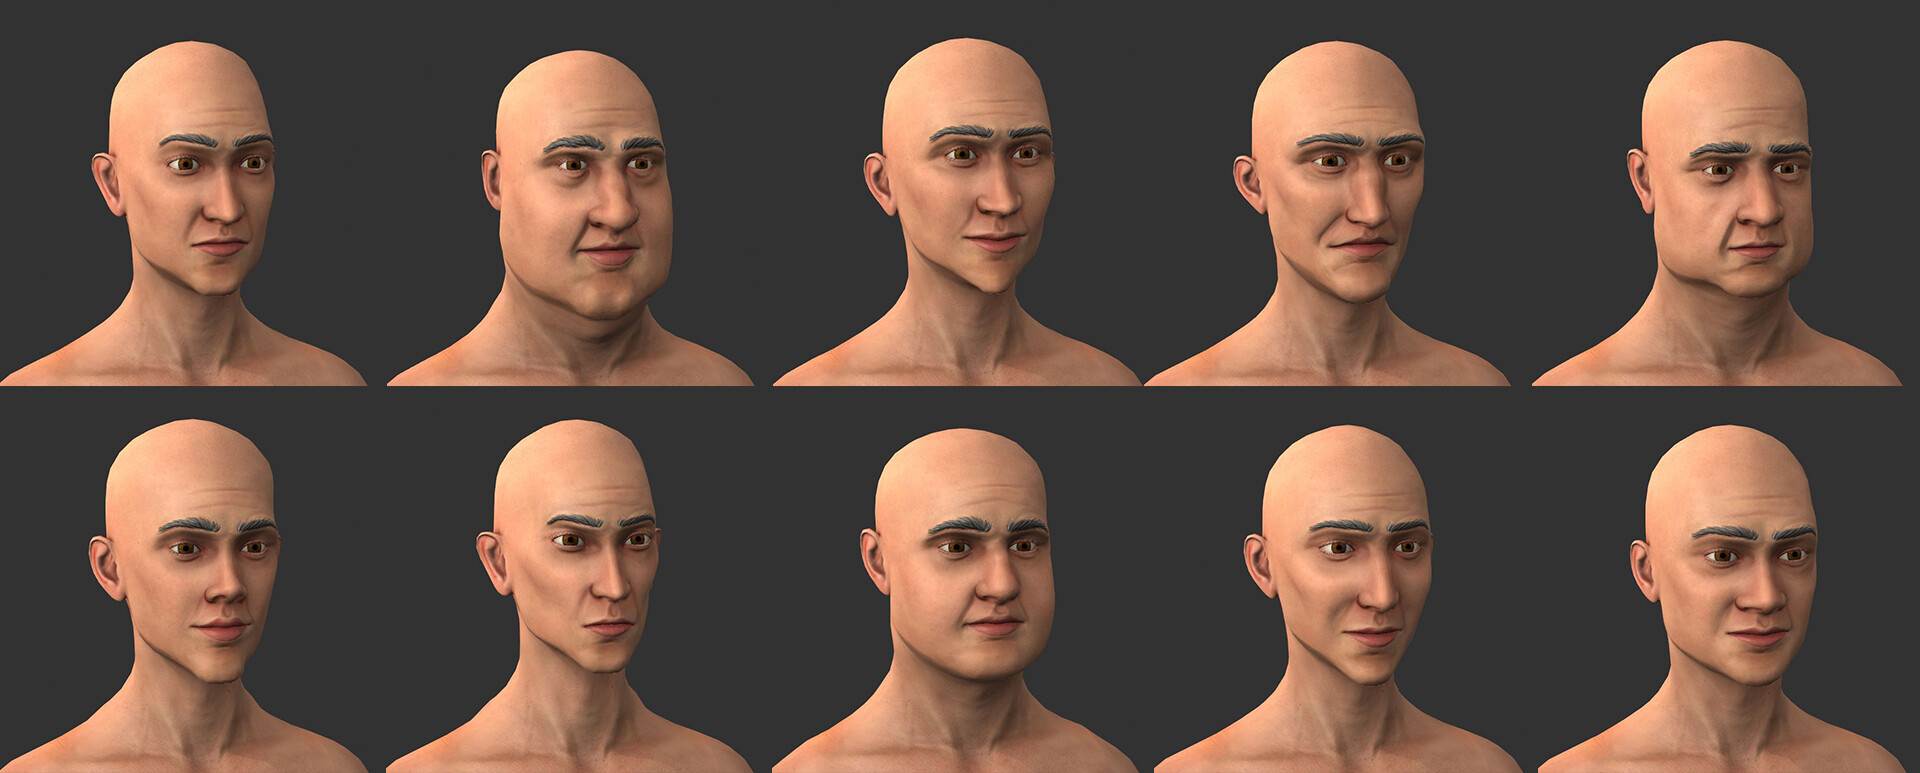 Man Head Variations